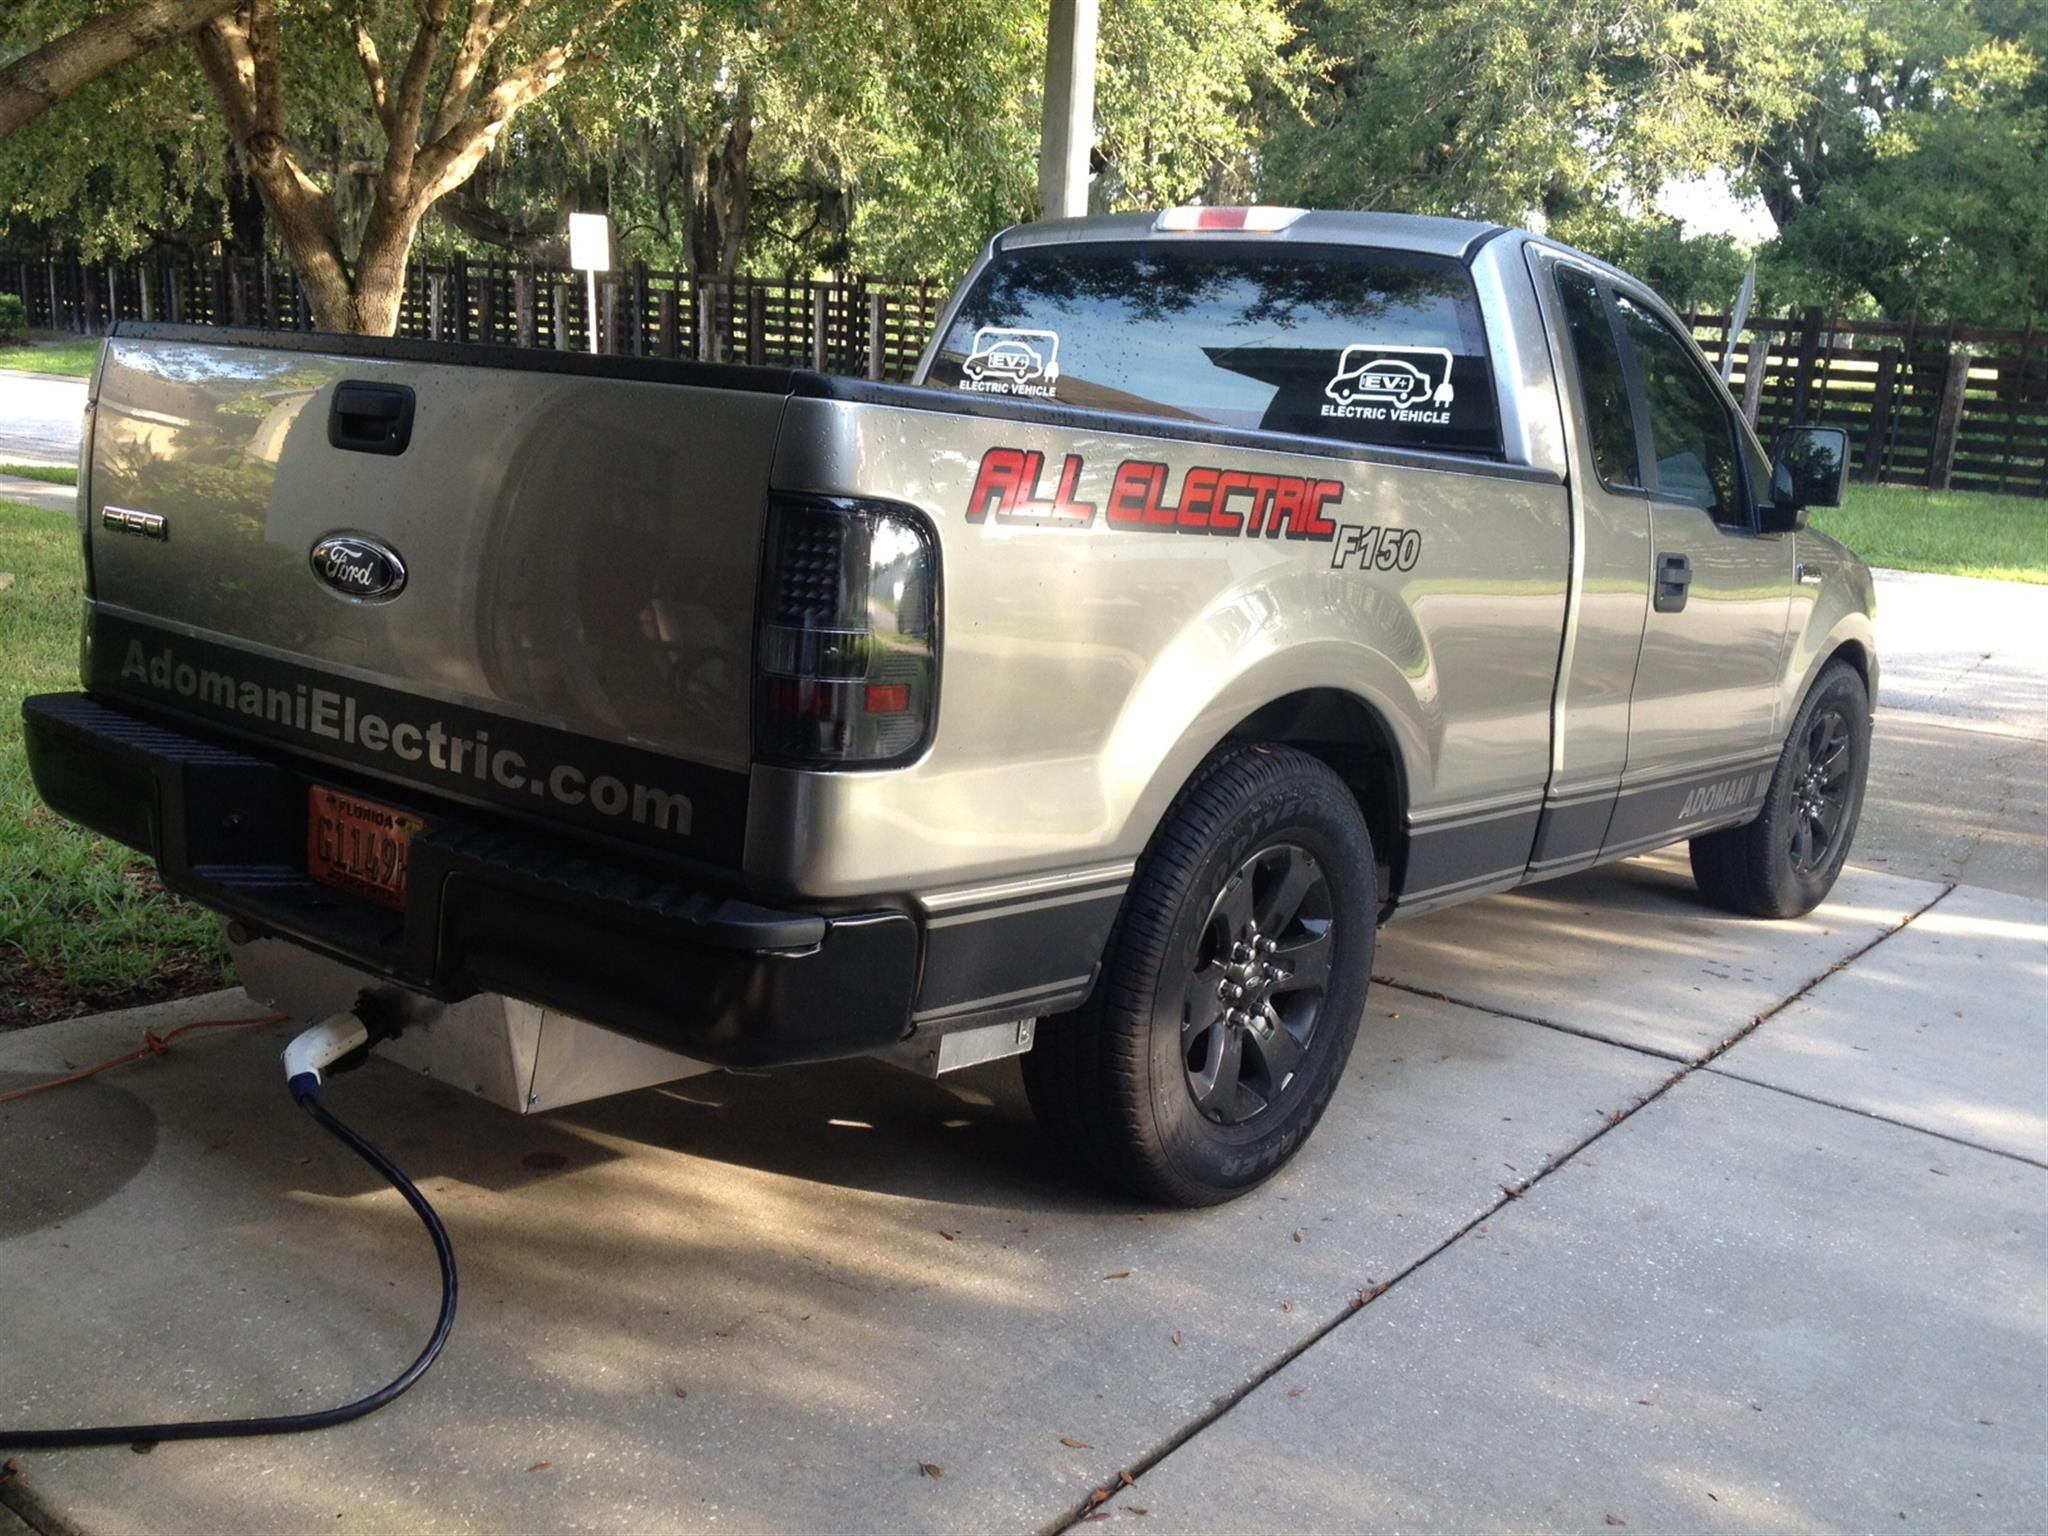 Ford F150 100 Electric Vehicle Conversion By Adomani Electric In